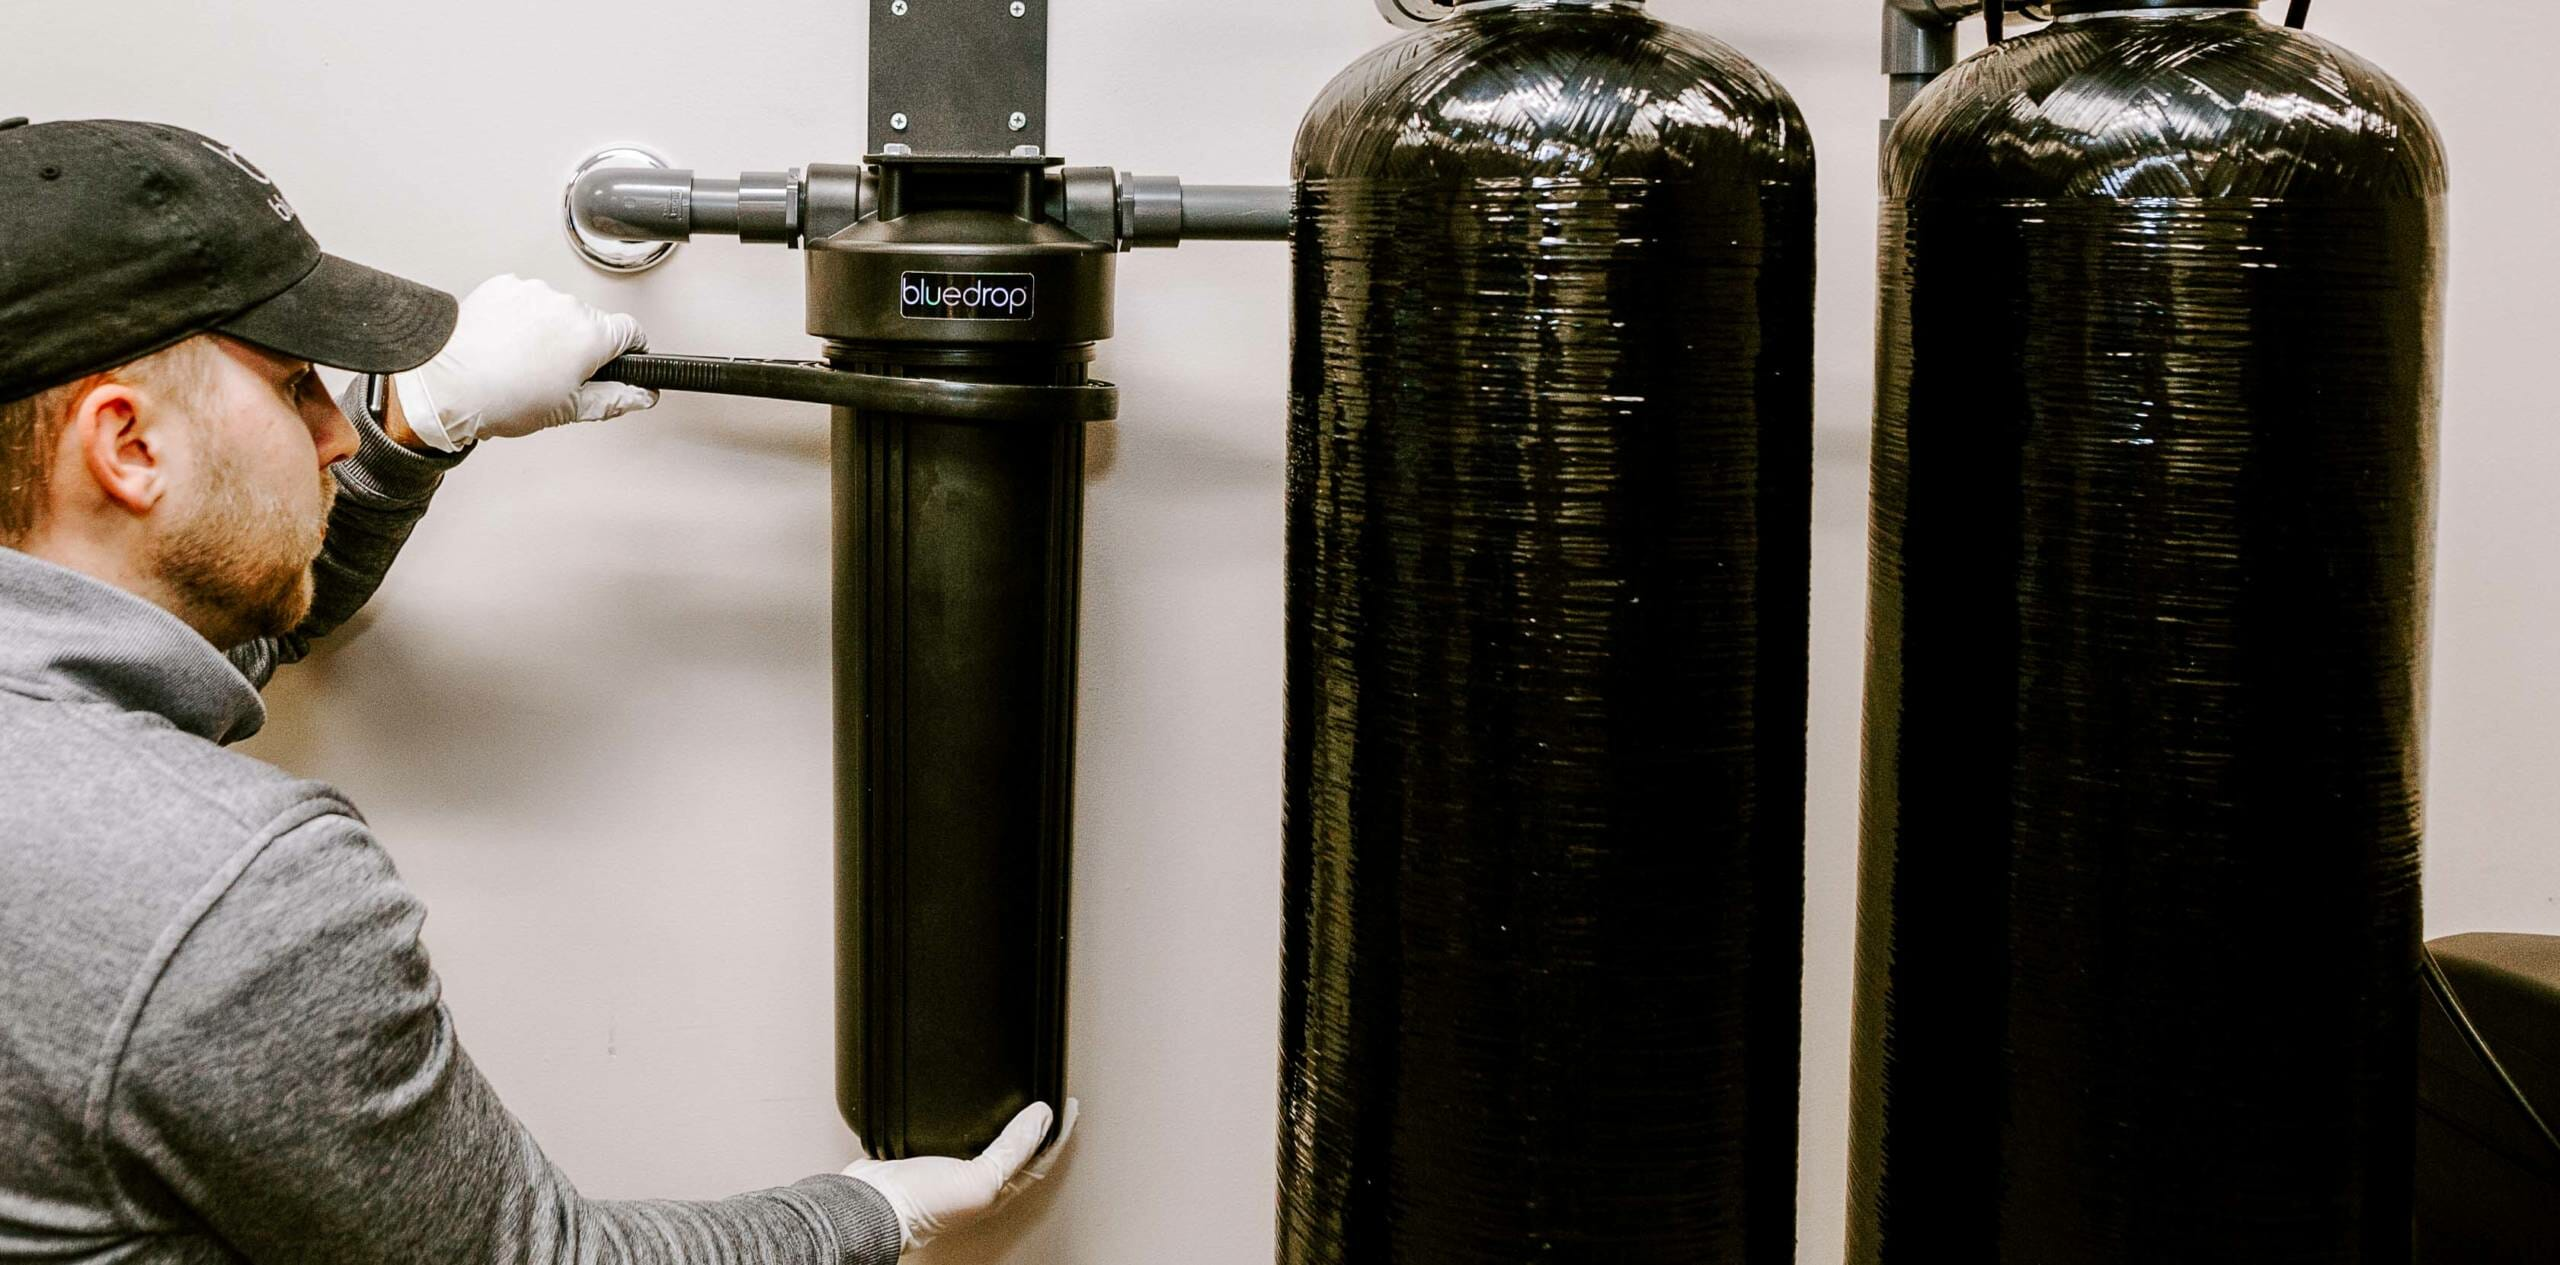 A person adjusting their bluedrop water whole home filtration system.